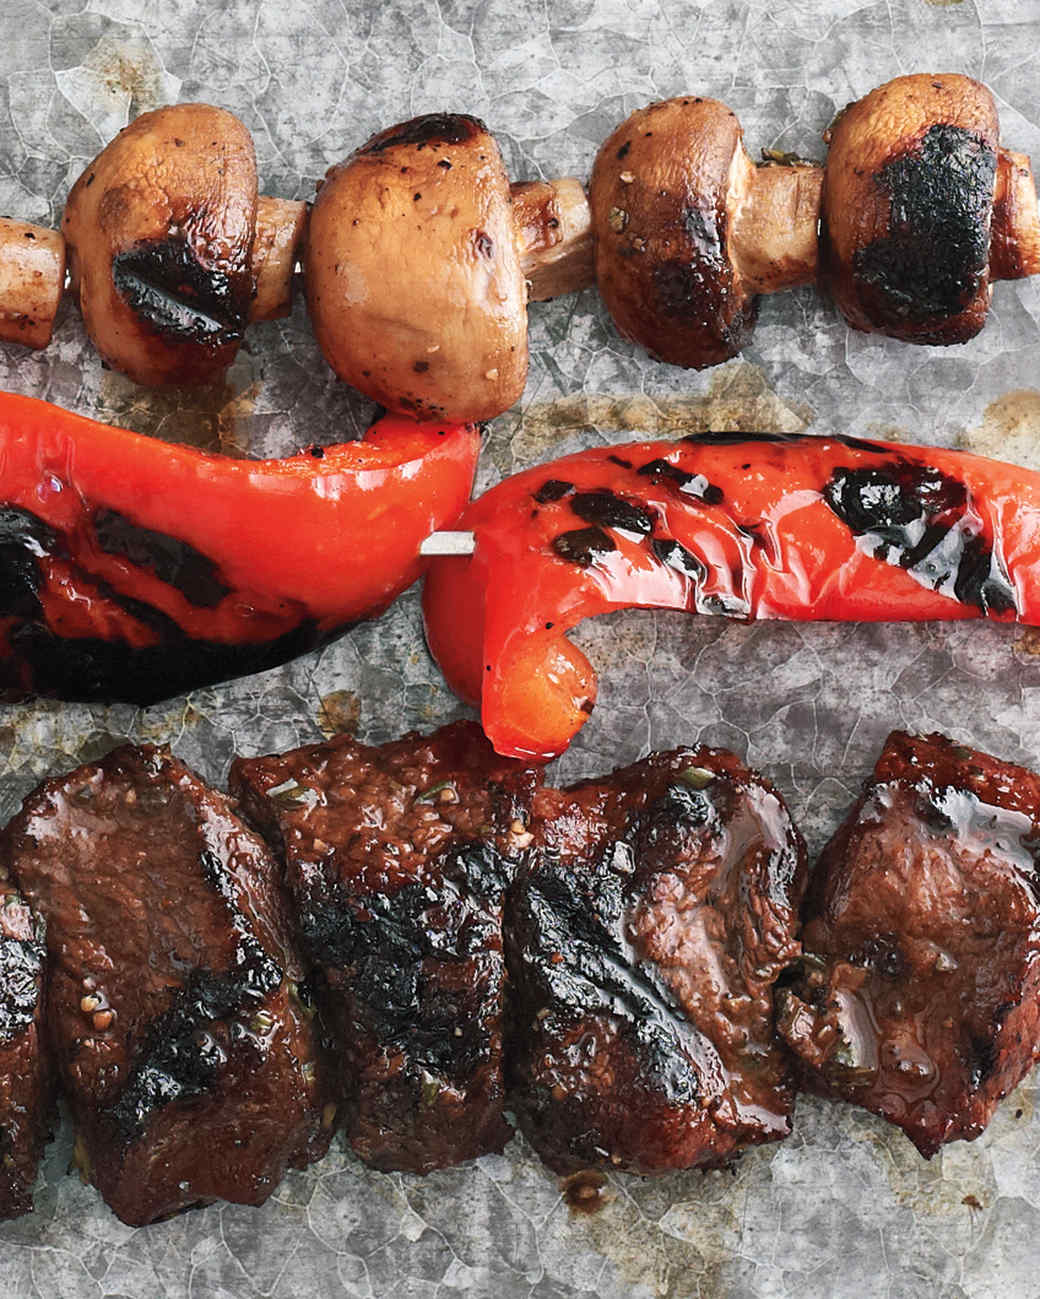 Mushrooms, Red Peppers, and Beef with Balsamic-Rosemary Marinade